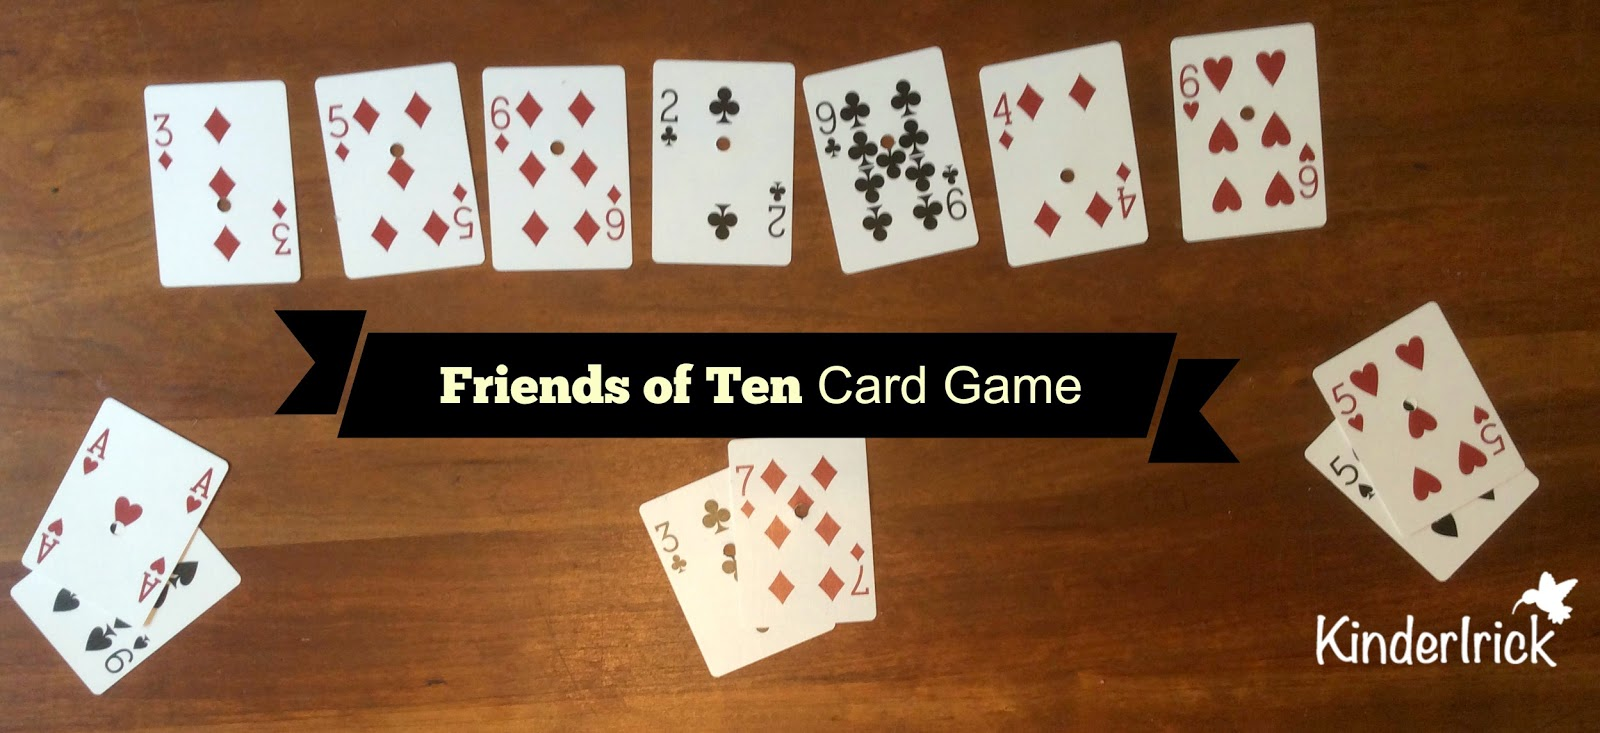 Making 10 with cards